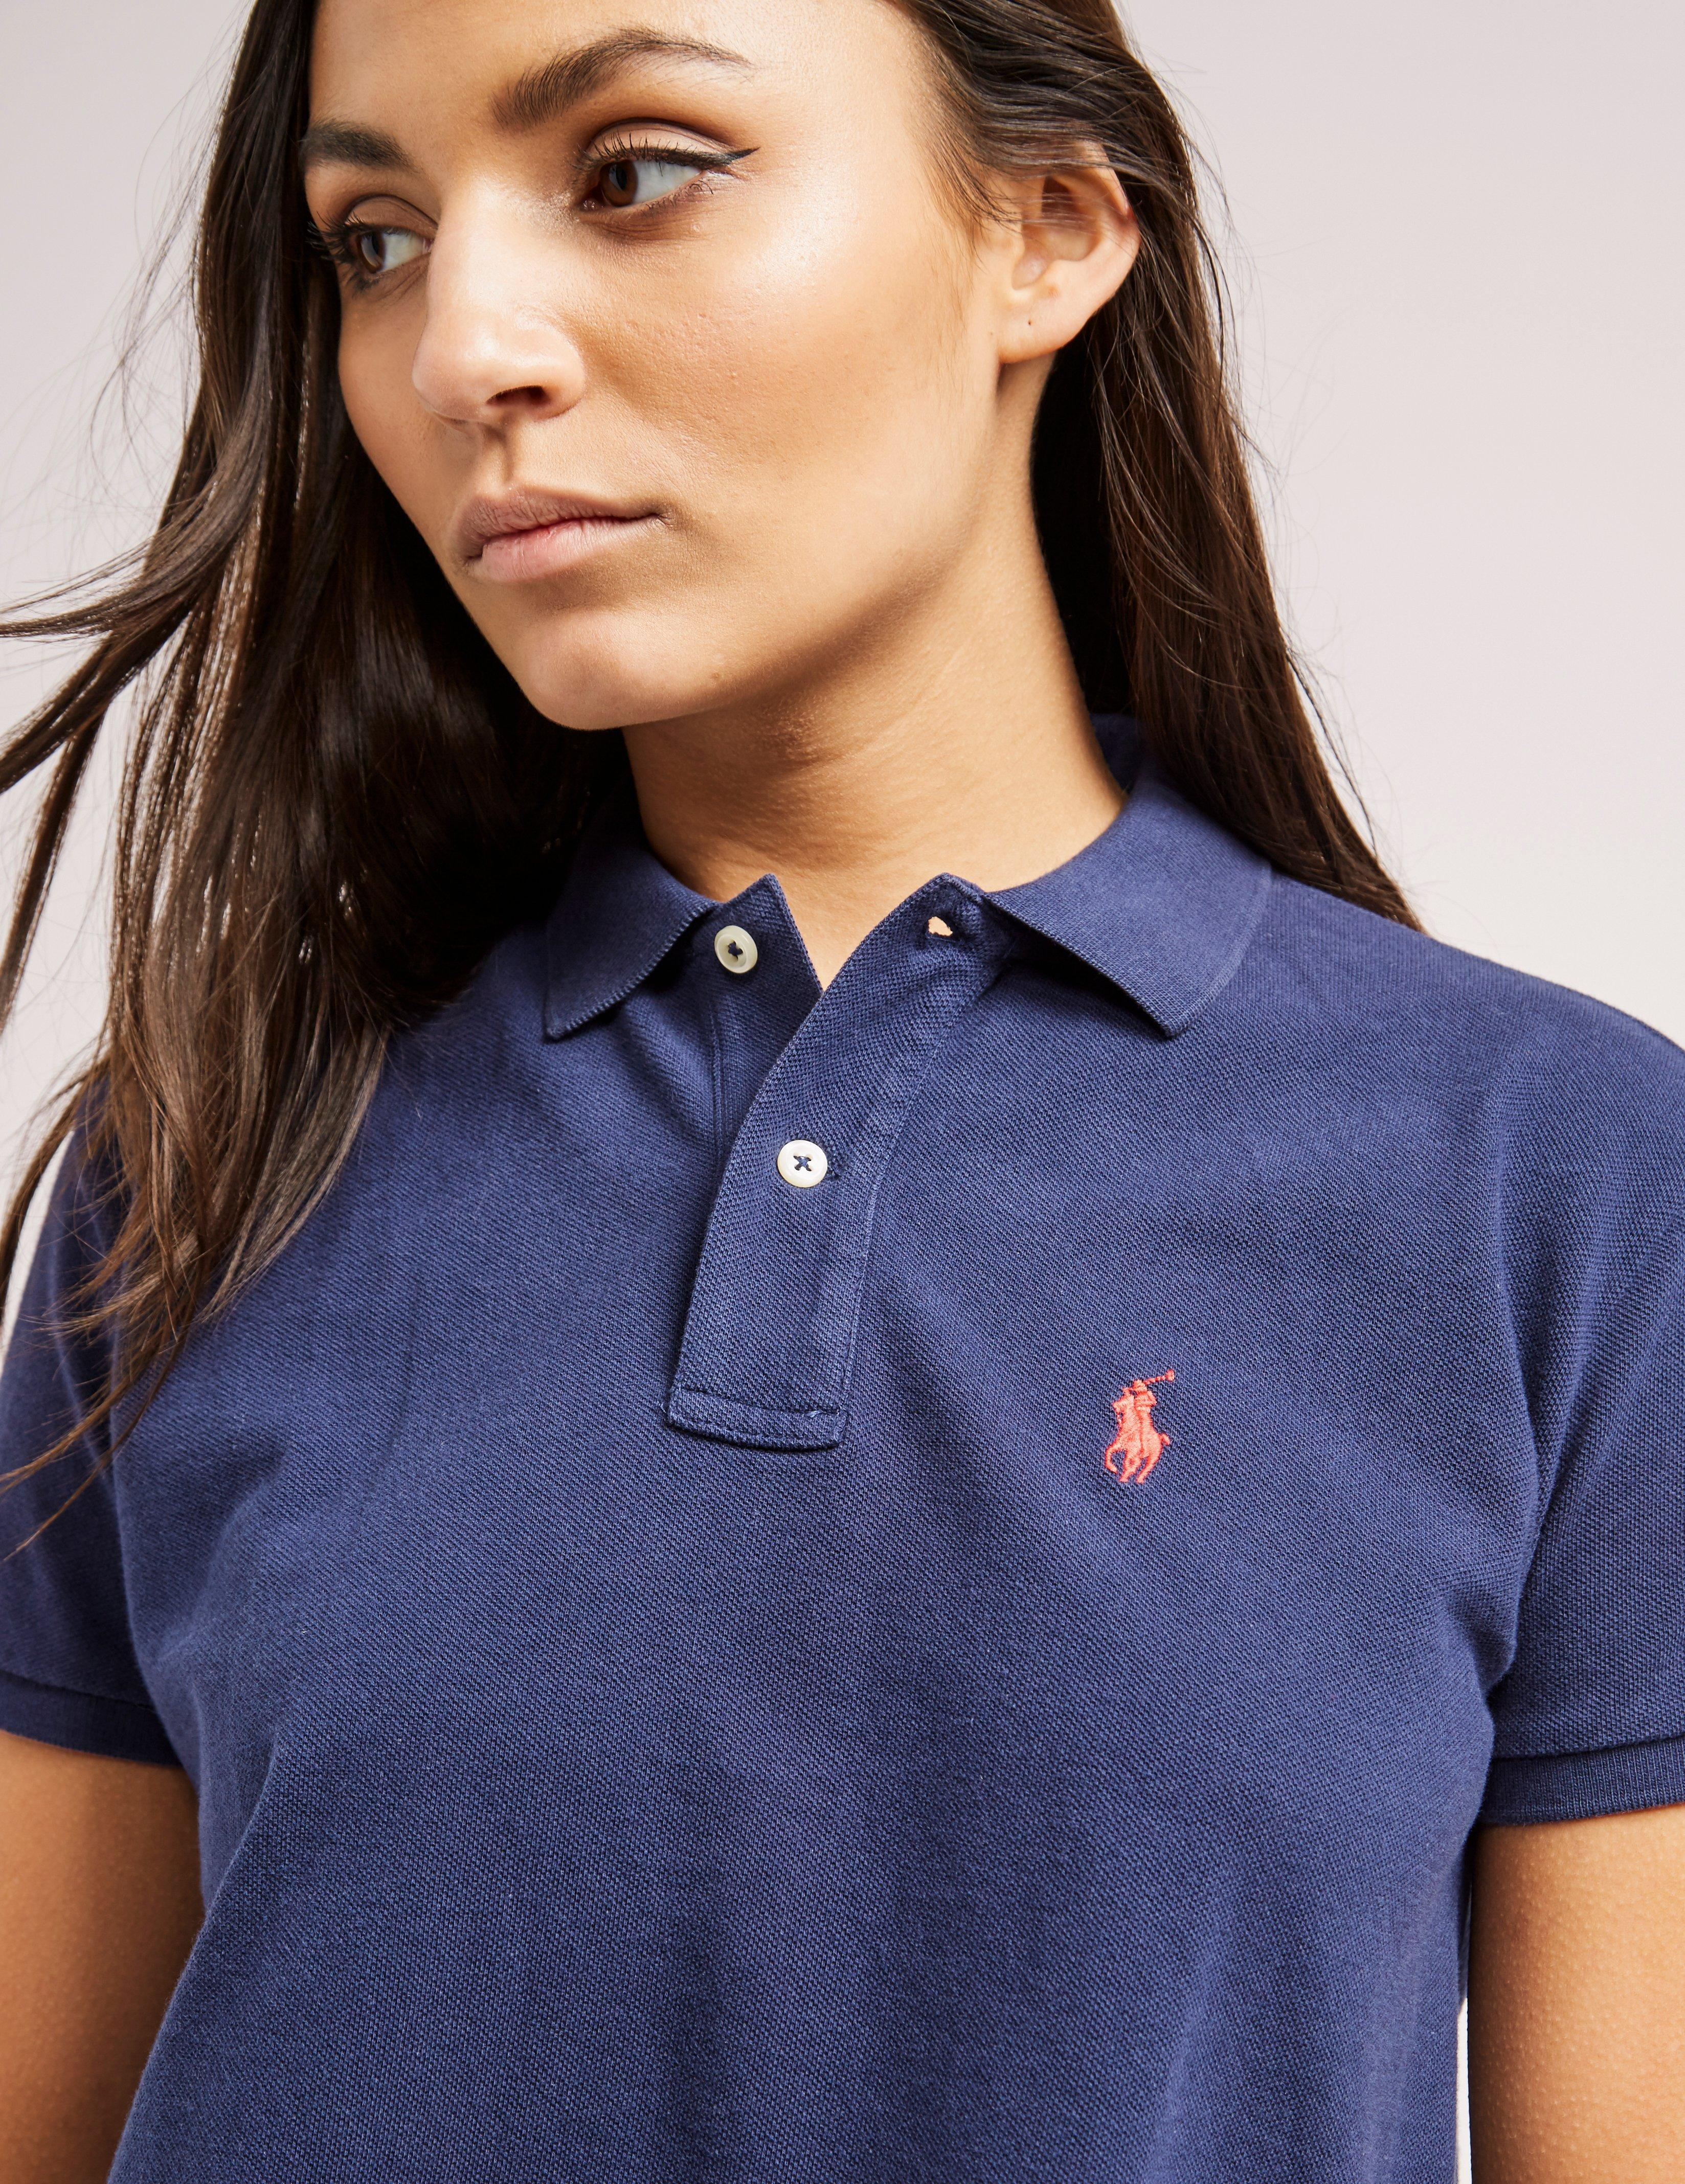 Lyst Polo Ralph Lauren Womens Cropped Polo Shirt Navy Navy In Blue